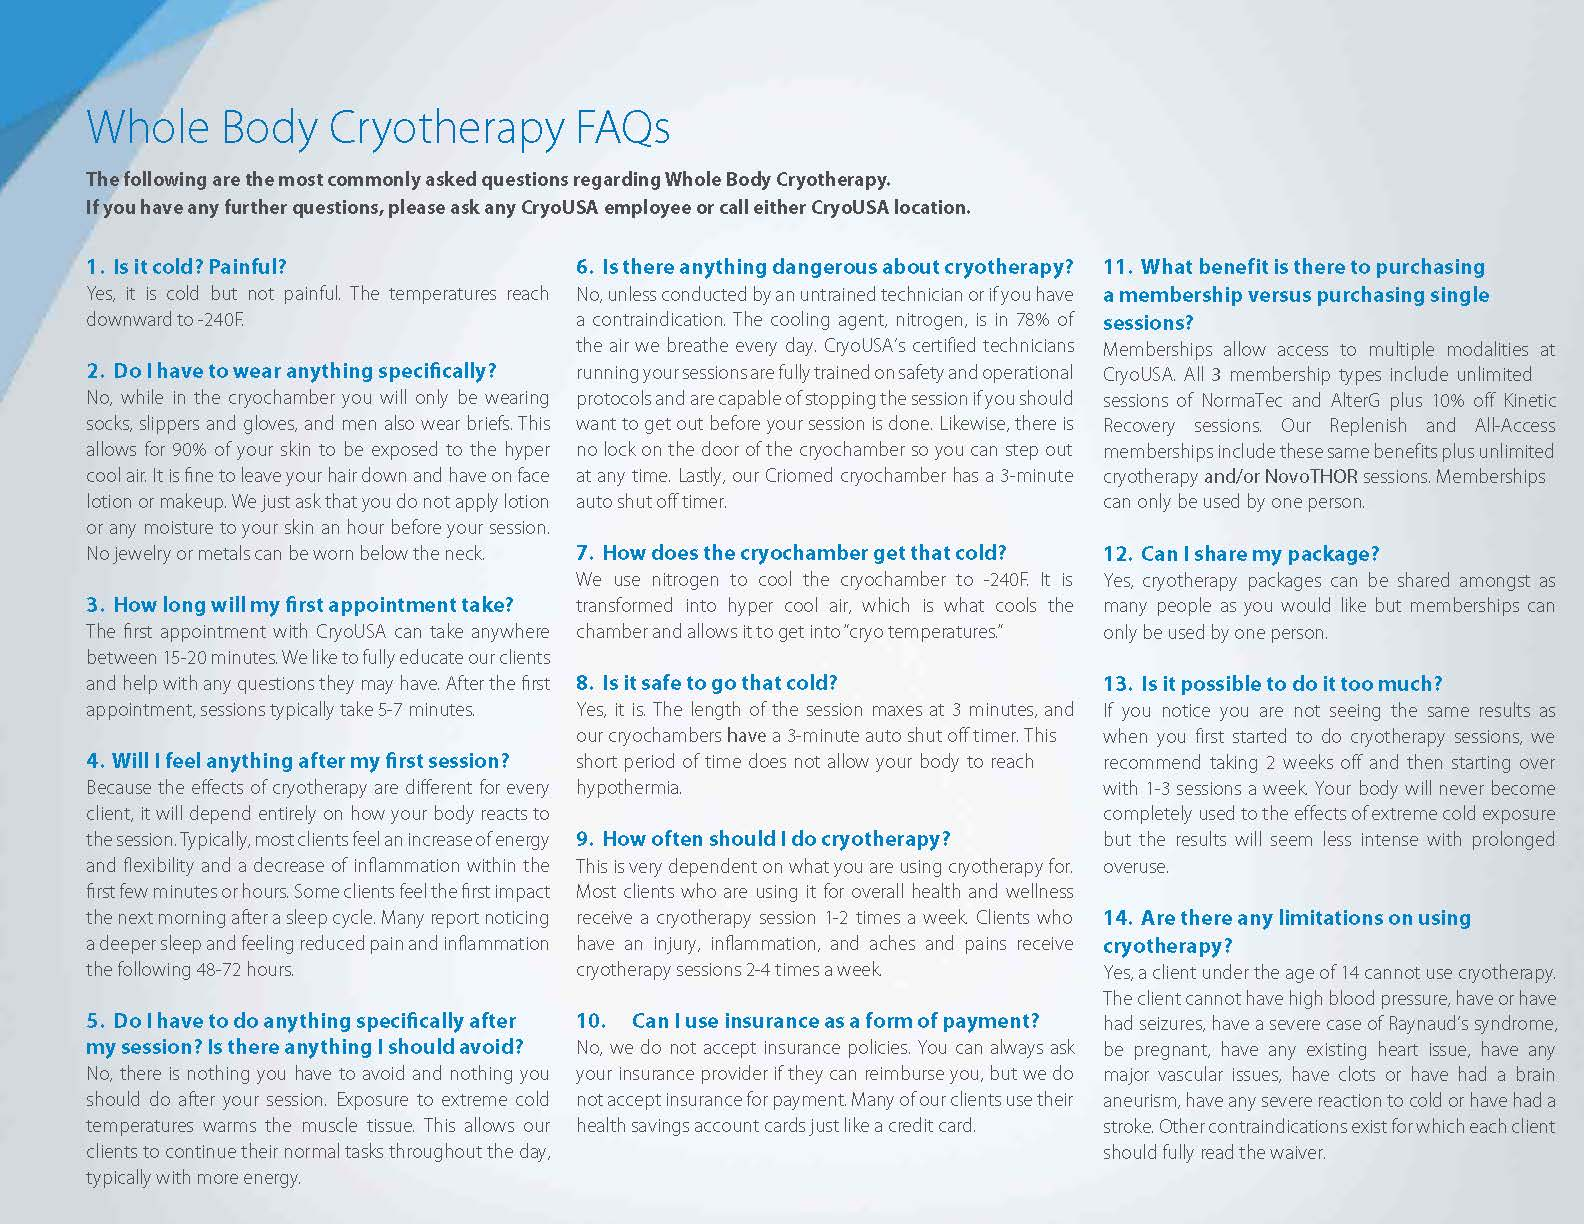 Cryotherapy FAQs